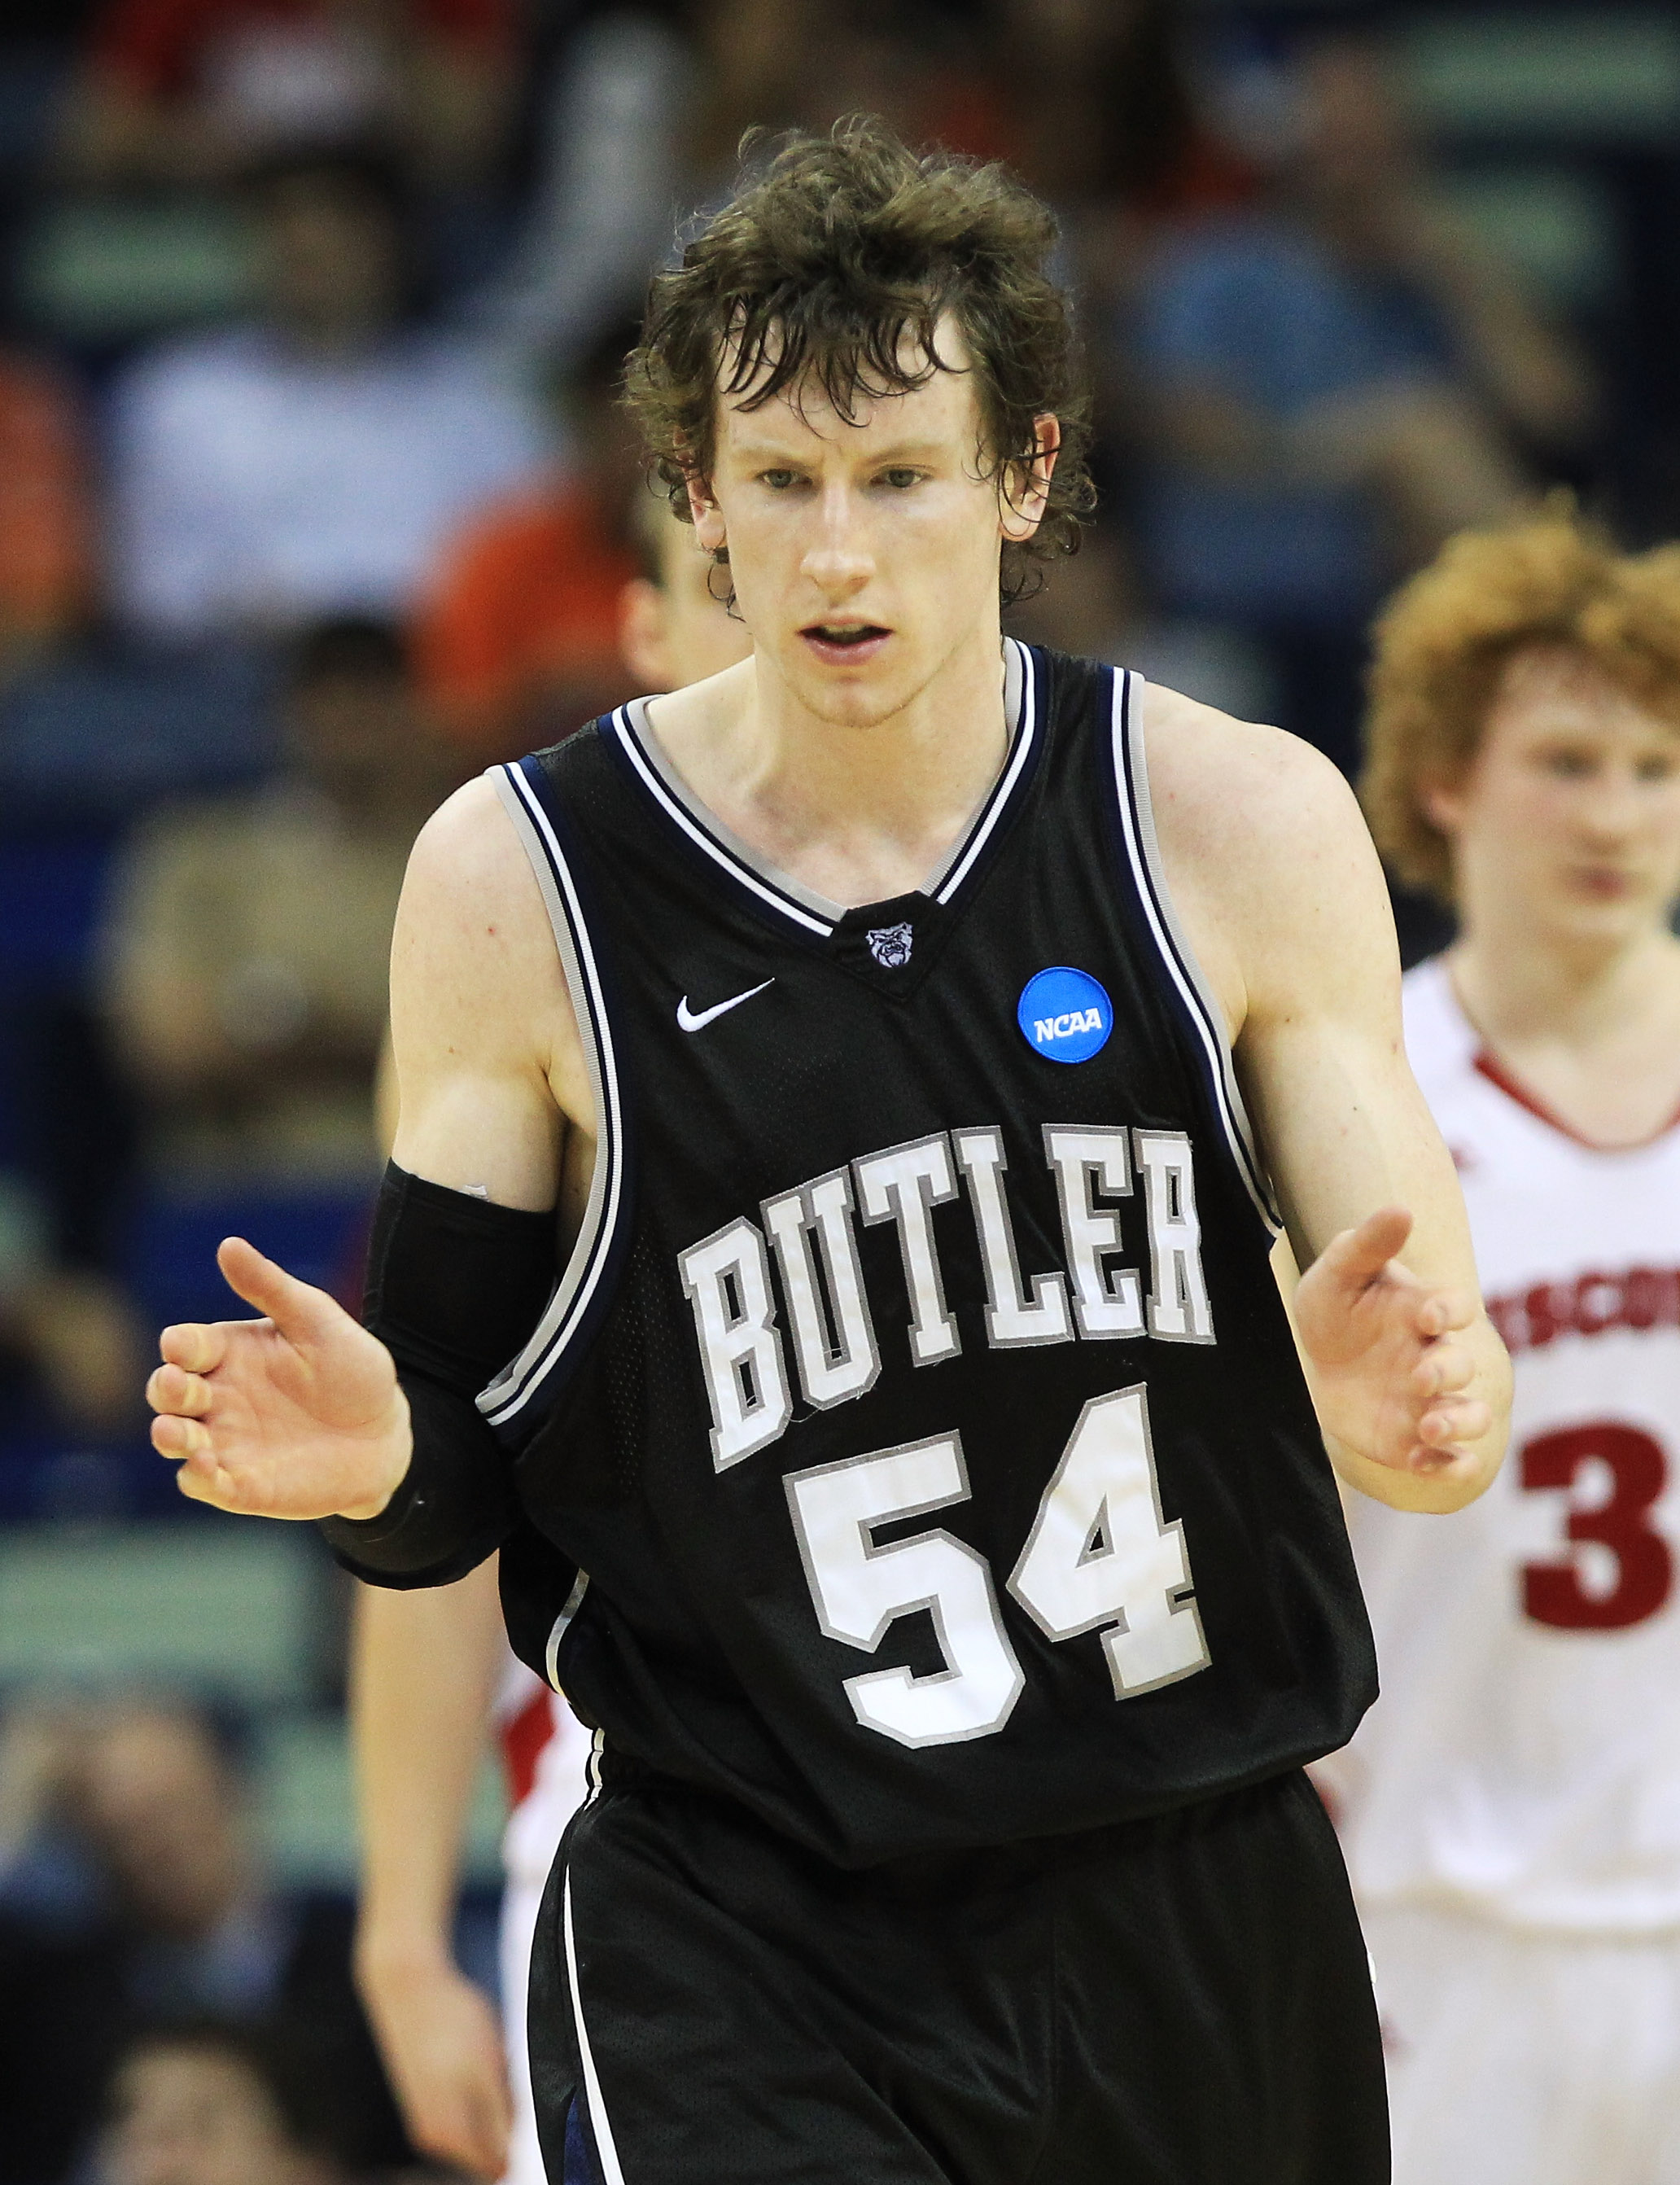 NEW ORLEANS, LA - MARCH 24:  Matt Howard #54 of the Butler Bulldogs reacts during their game against the Wisconsin Badgers during the Southeast regional of the 2011 NCAA men's basketball tournament at New Orleans Arena on March 24, 2011 in New Orleans, Lo